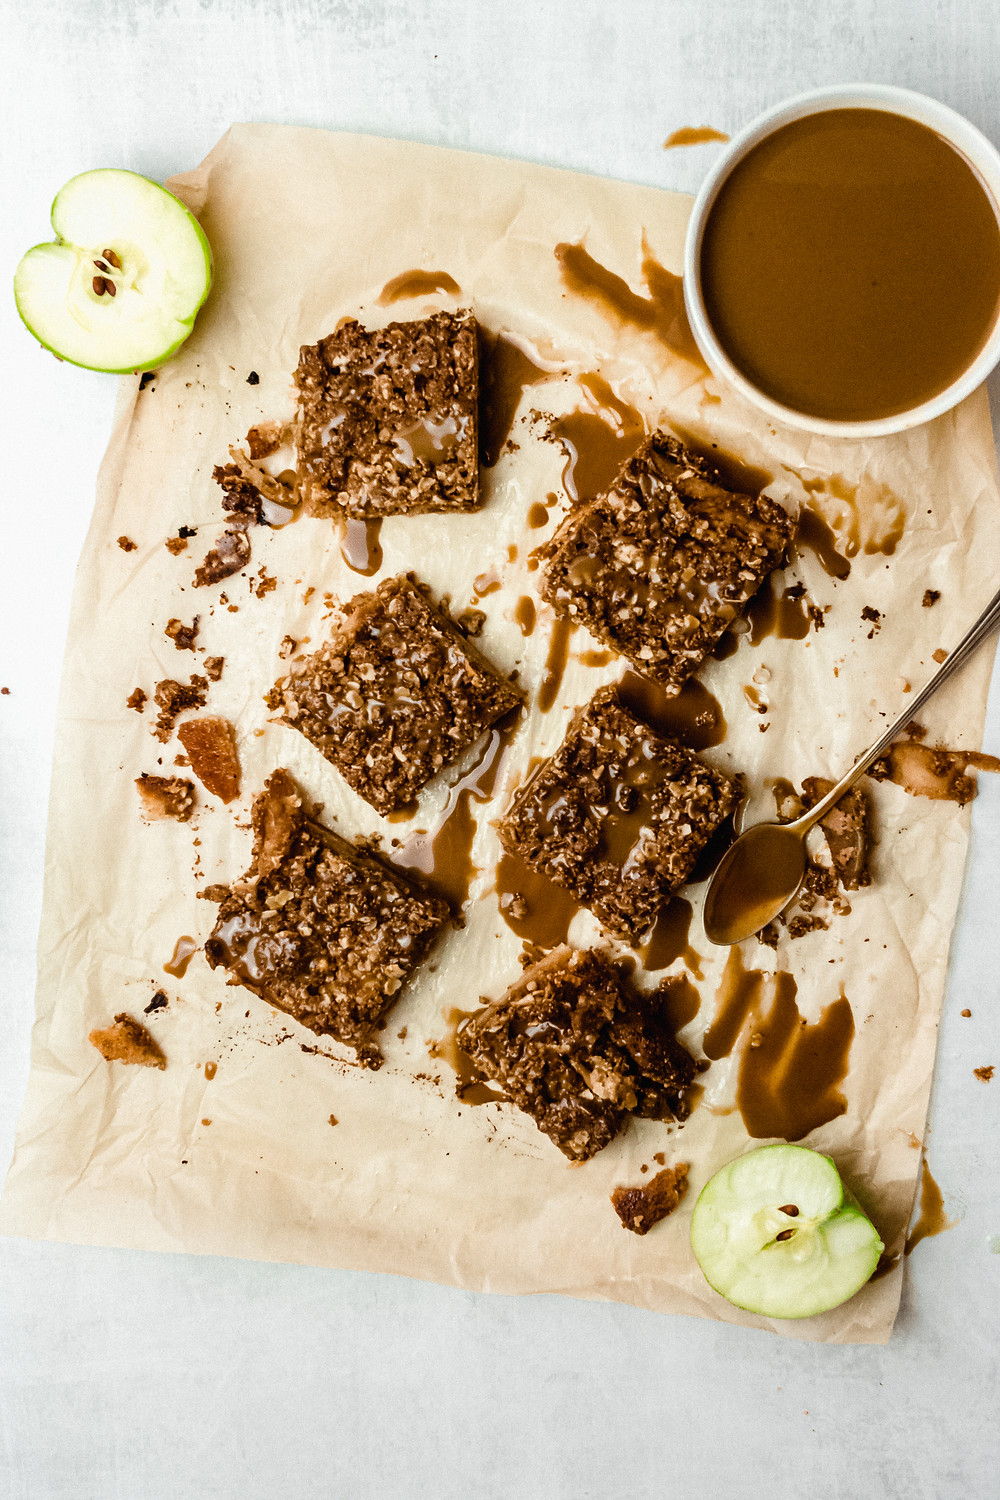 """Pretty Delicious Life Salted Caramel Apple Pie Bars - Gluten Free, Refined Sugar Free - This apple pie bar recipe kind of happened as a random out of the blue """"hack"""" of sorts. A friend sent me a message recently noting that she was trying to do more baking with alternative flours like almond + coconut flour"""